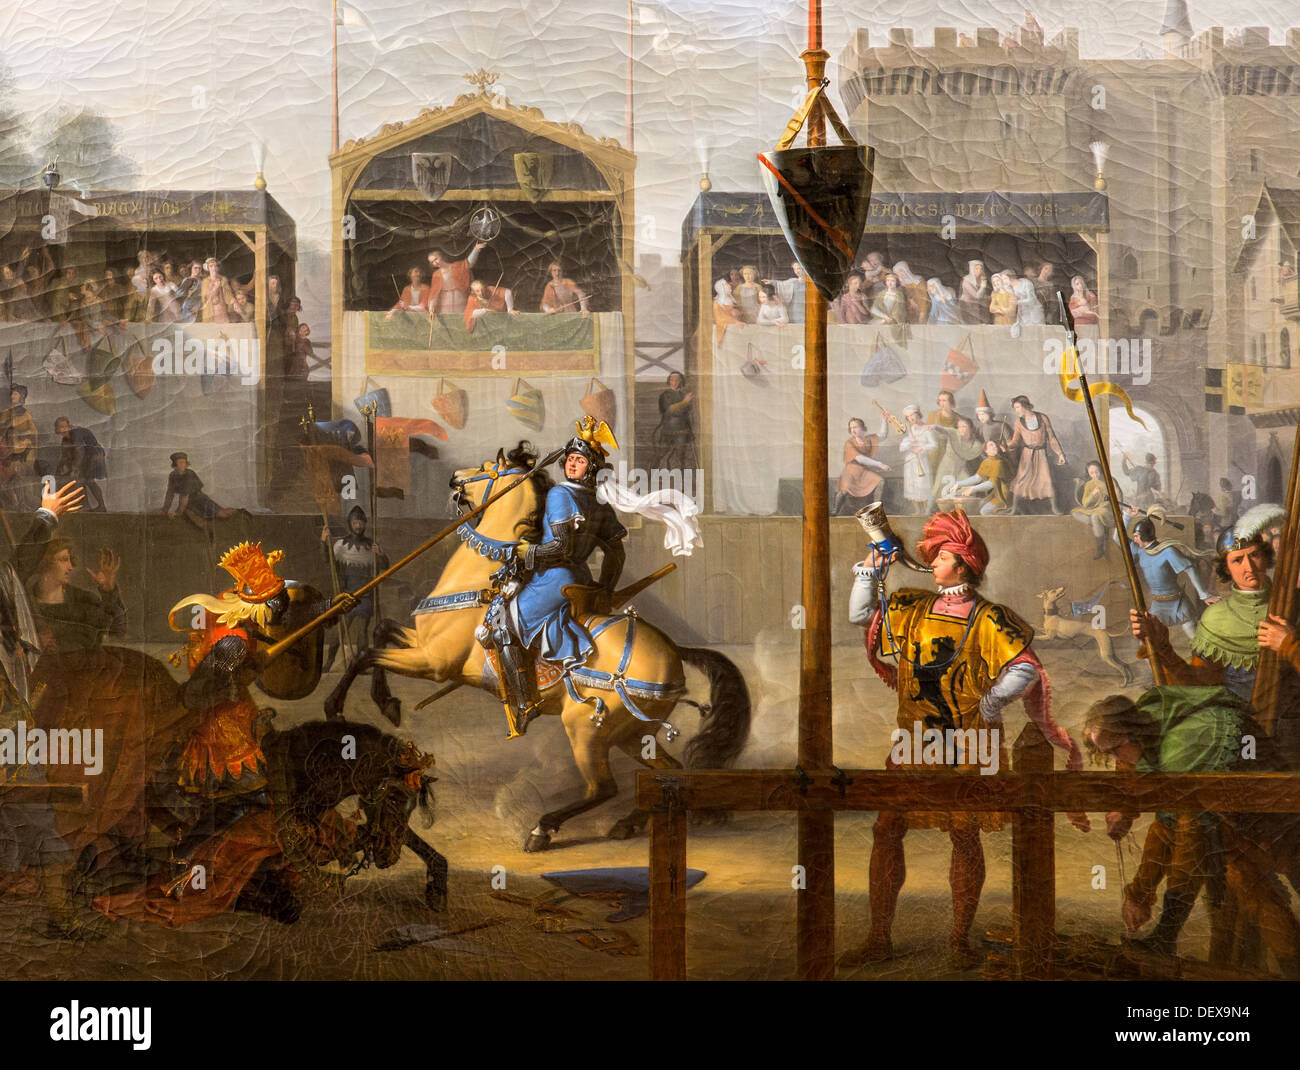 19th century  -  A Tournament in the 14th century, 1812 - Pierre Révoil Philippe Sauvan-Magnet / Active Museum oil on canvas - Stock Image